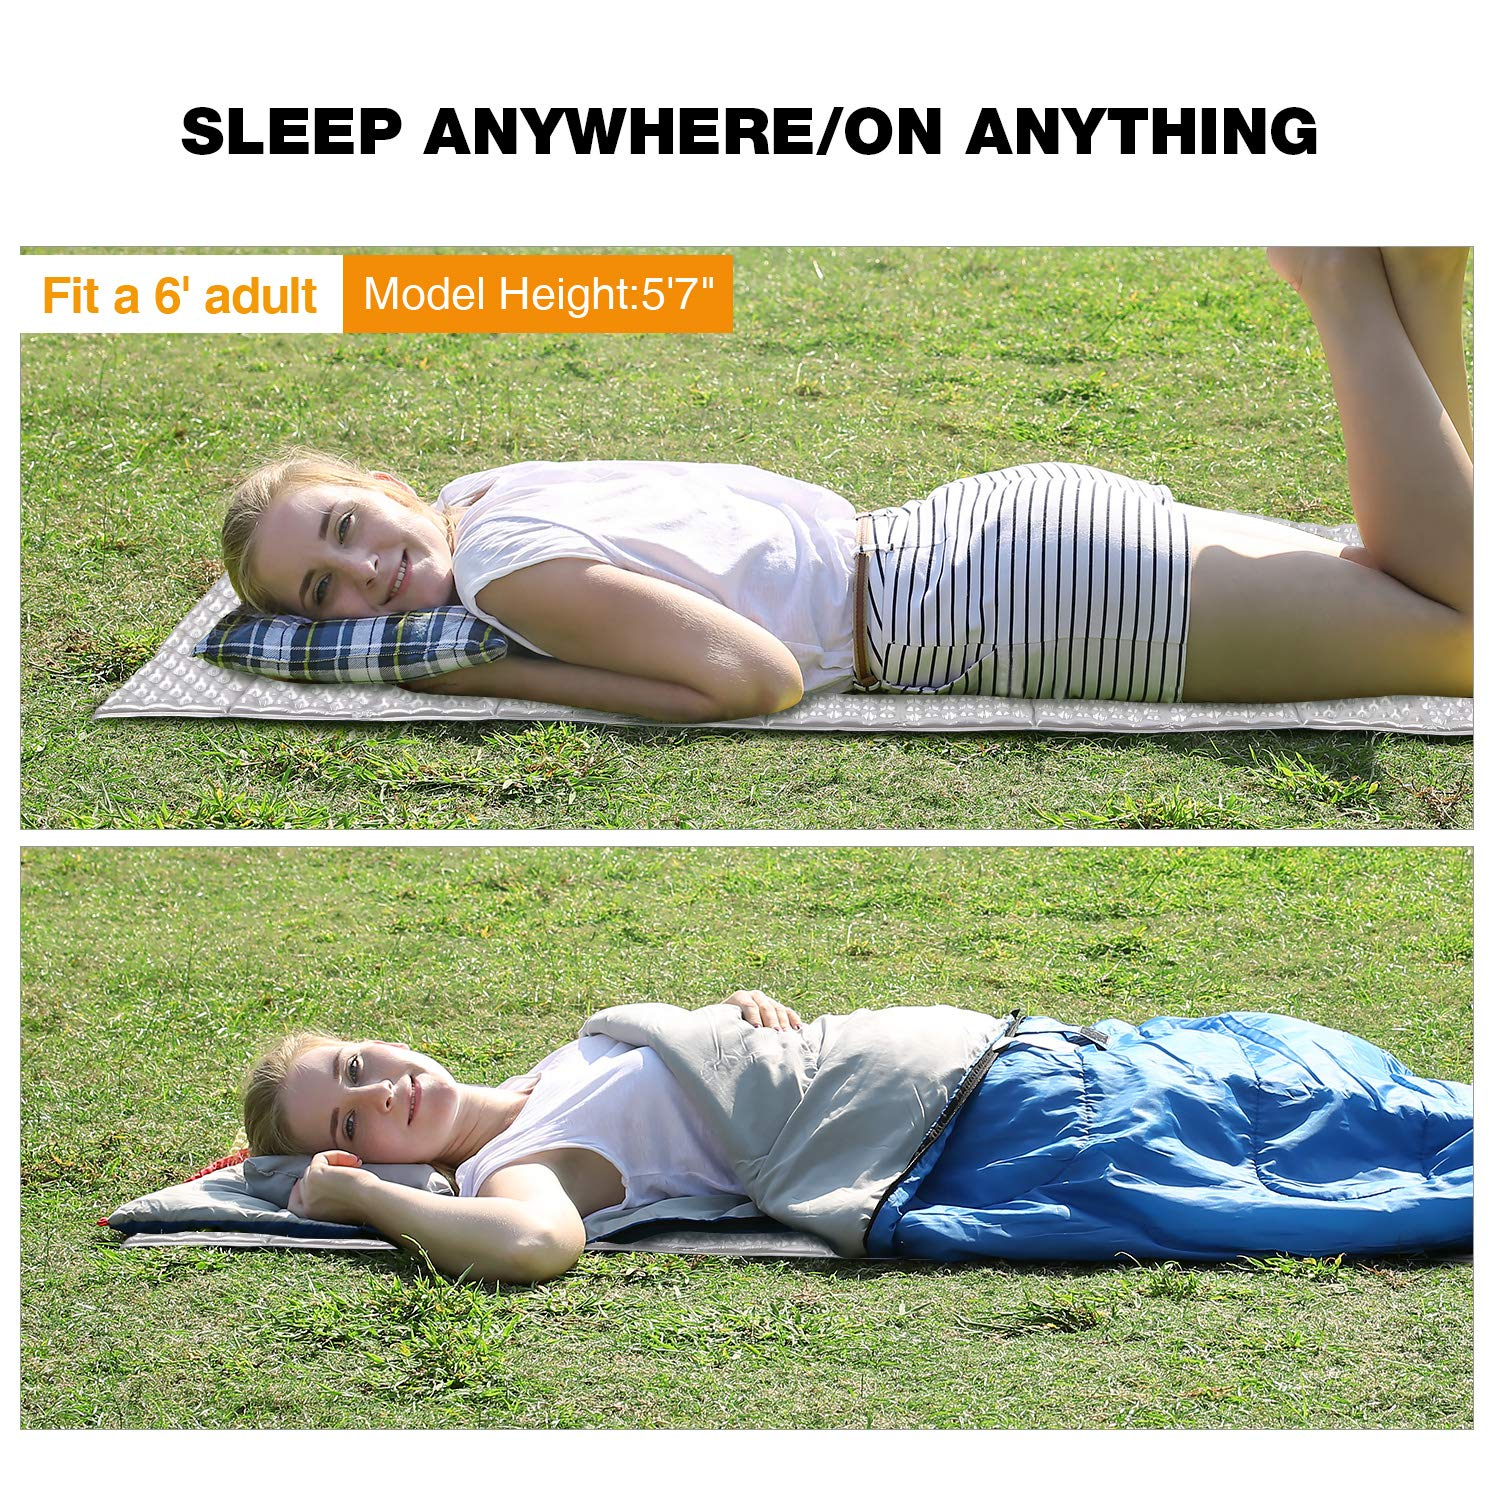 Blue//Grey 22 Wide Lightweight Folding Camping Pad for Hiking Backpacking REDCAMP Closed Cell Foam Camping Sleeping Pad 72x22x0.75